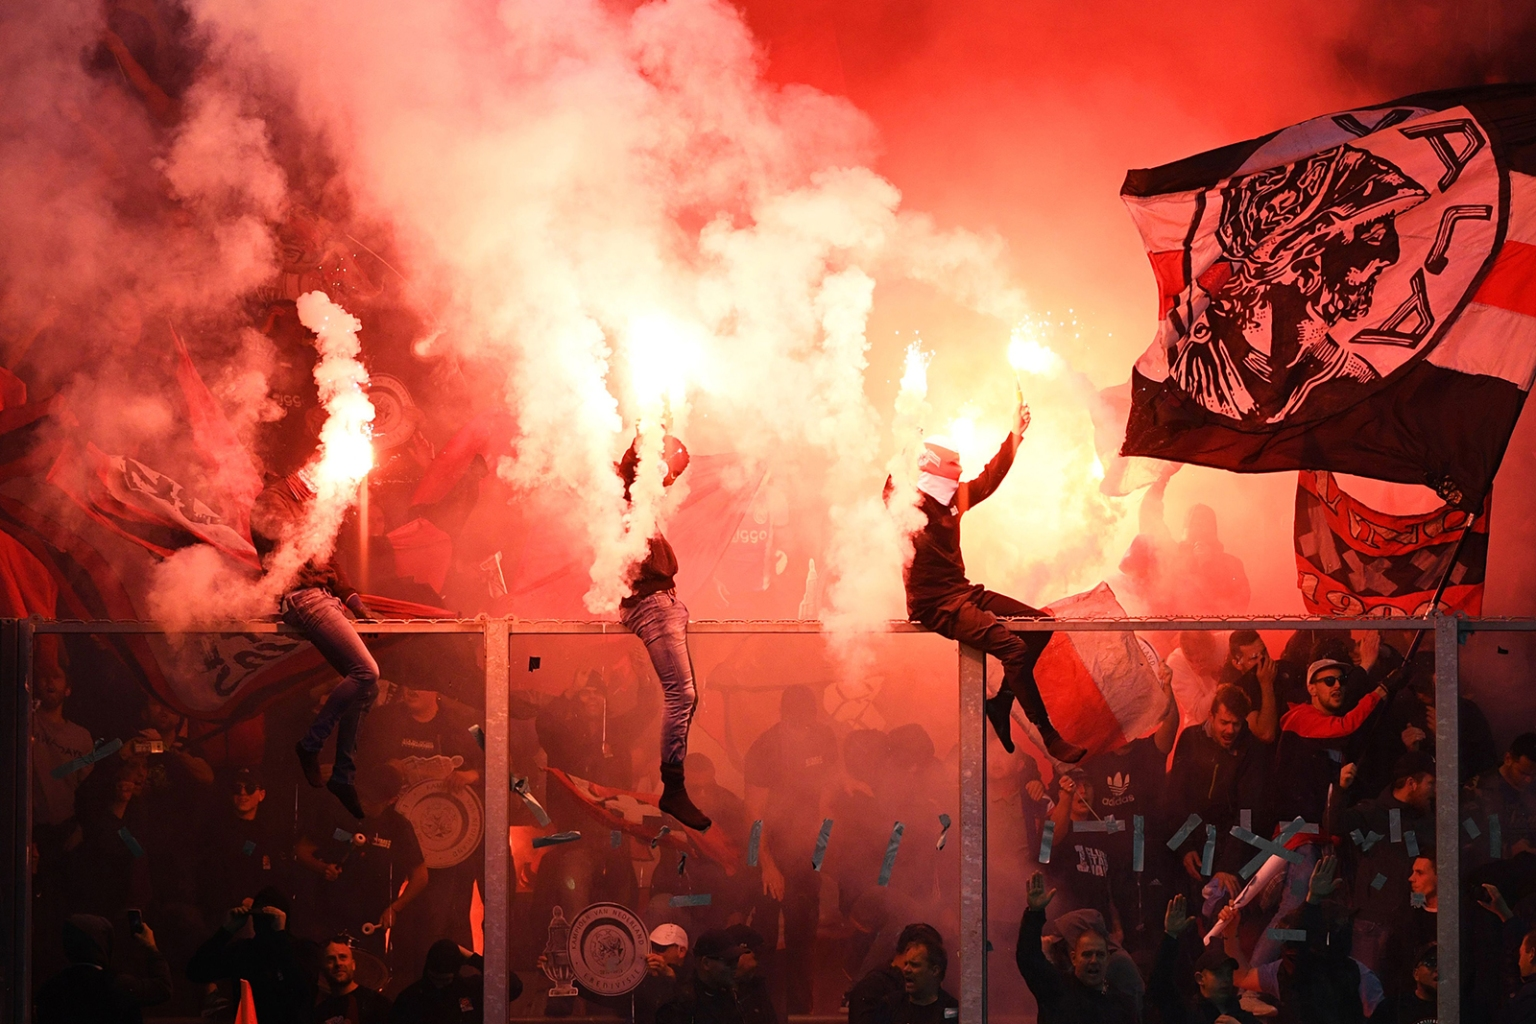 Ajax Amsterdam's supporters celebrate at the end of the Dutch Eredivisie football match between De Graafschap Doetinchem and Ajax Amsterdam in Doetinchem on May 15. OLAF KRAAK/AFP/Getty Images